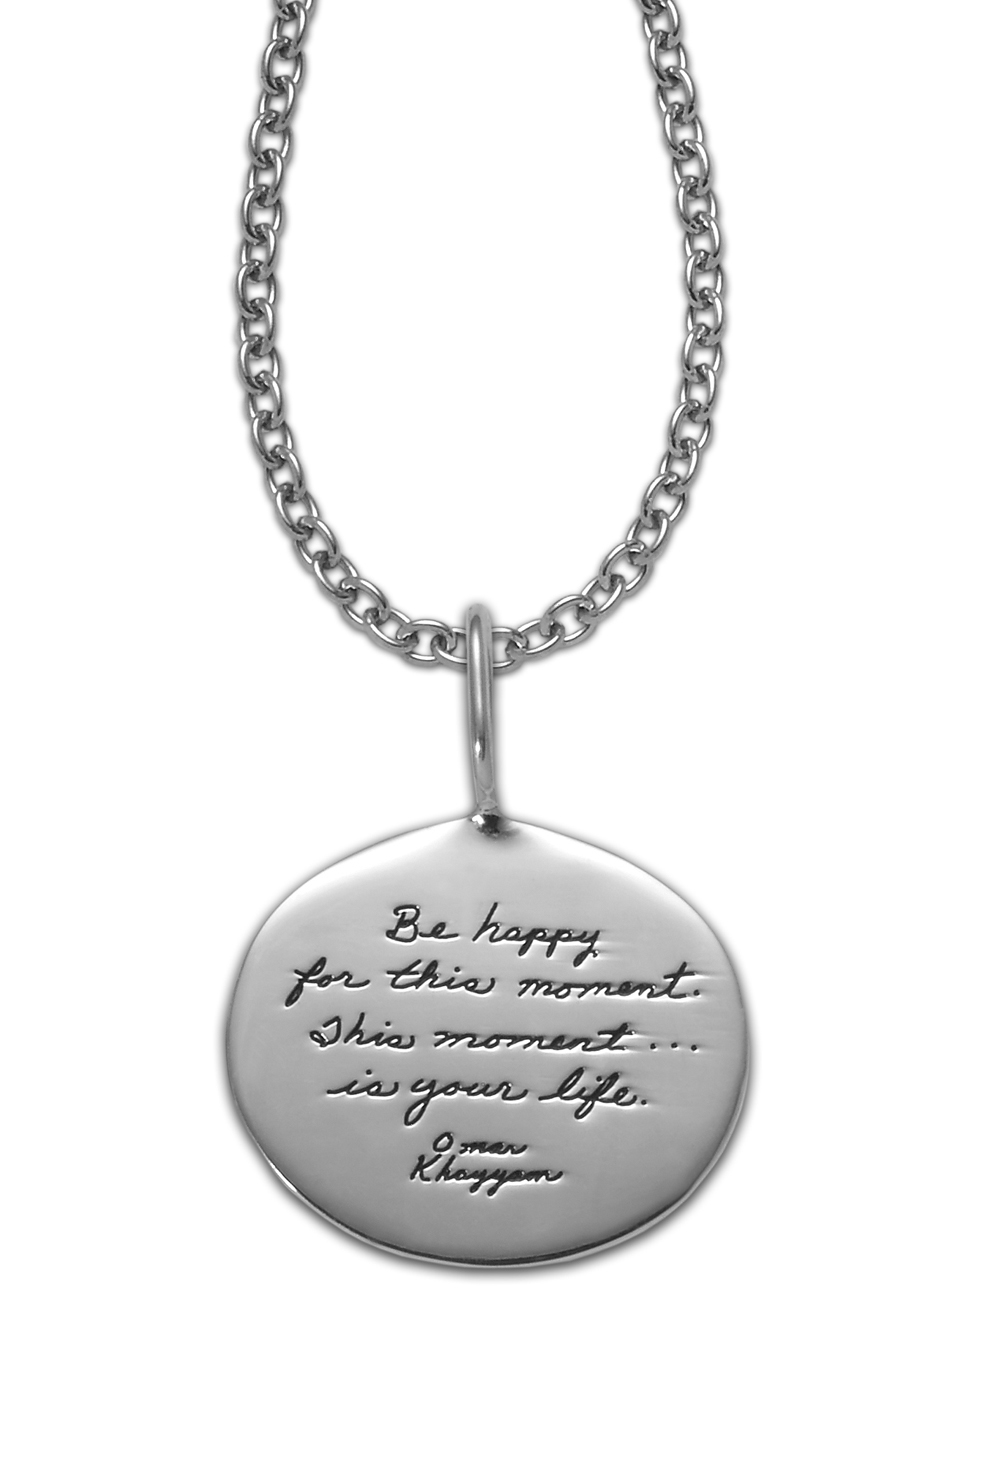 Inspirational Sterling Silver Oval Pendant with engraved words: Be happy for this moment. This moment... is your life. -Omar Khayyam